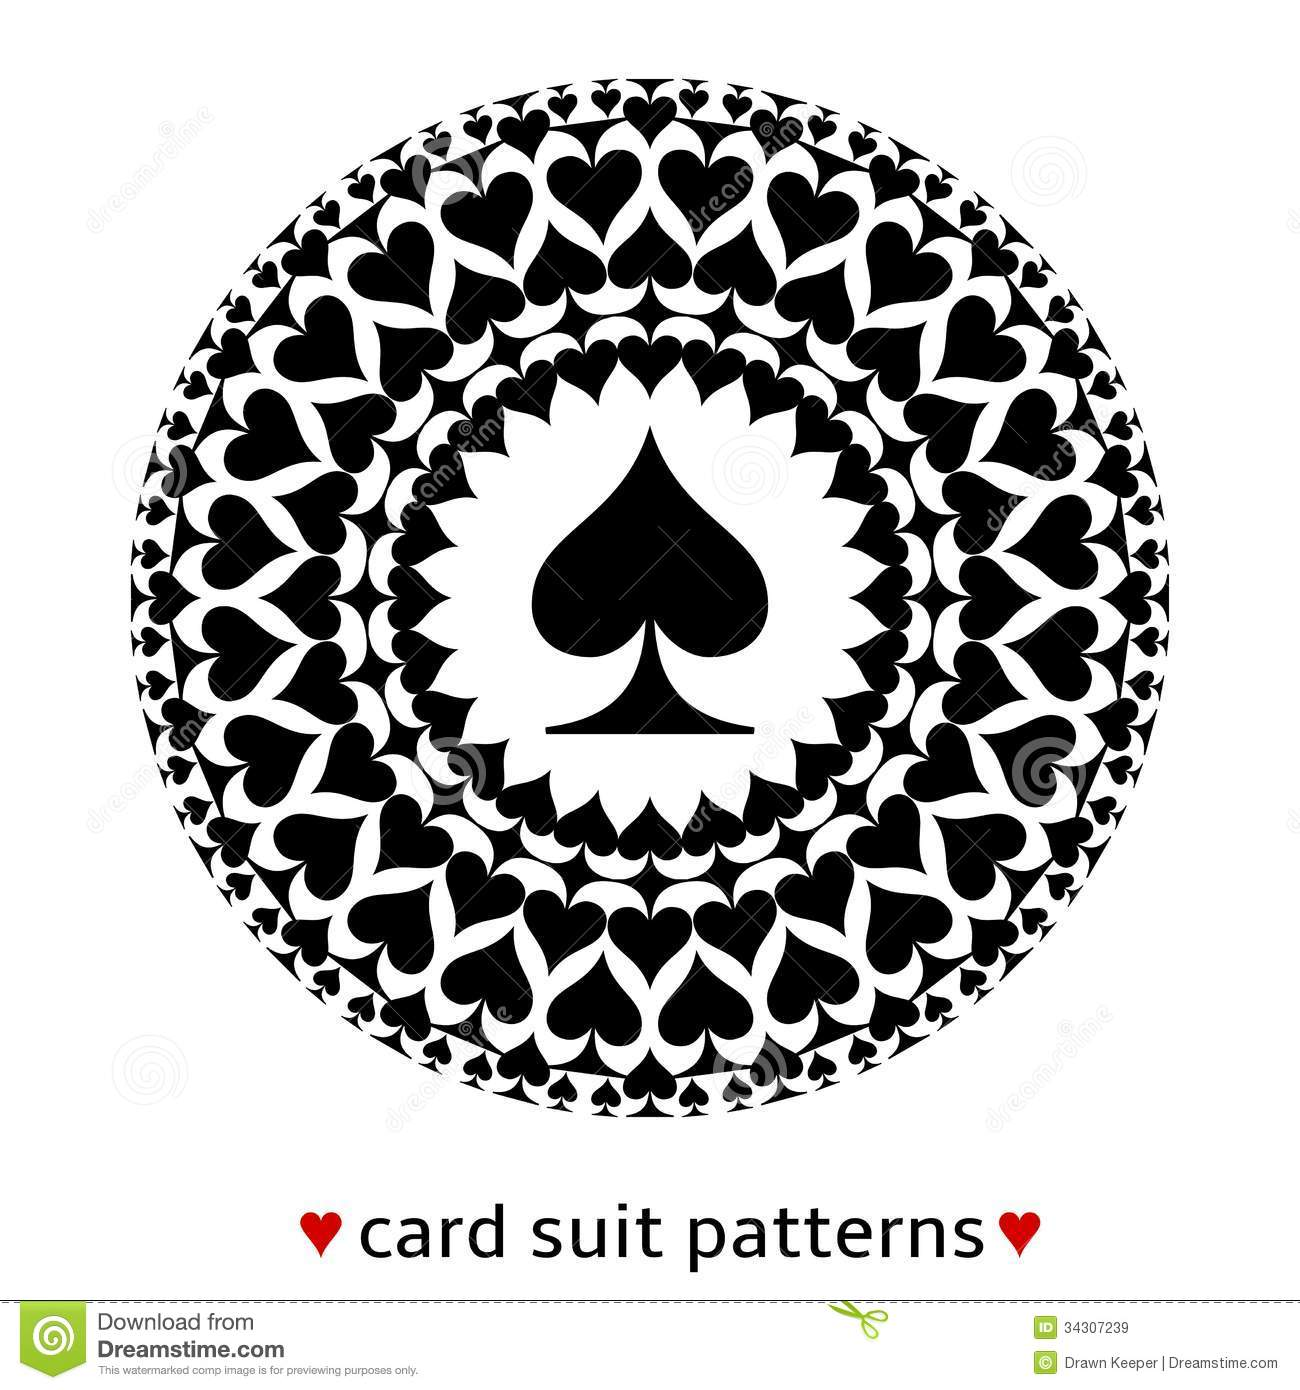 Spade Card Suit Pattern Royalty Free Stock Images